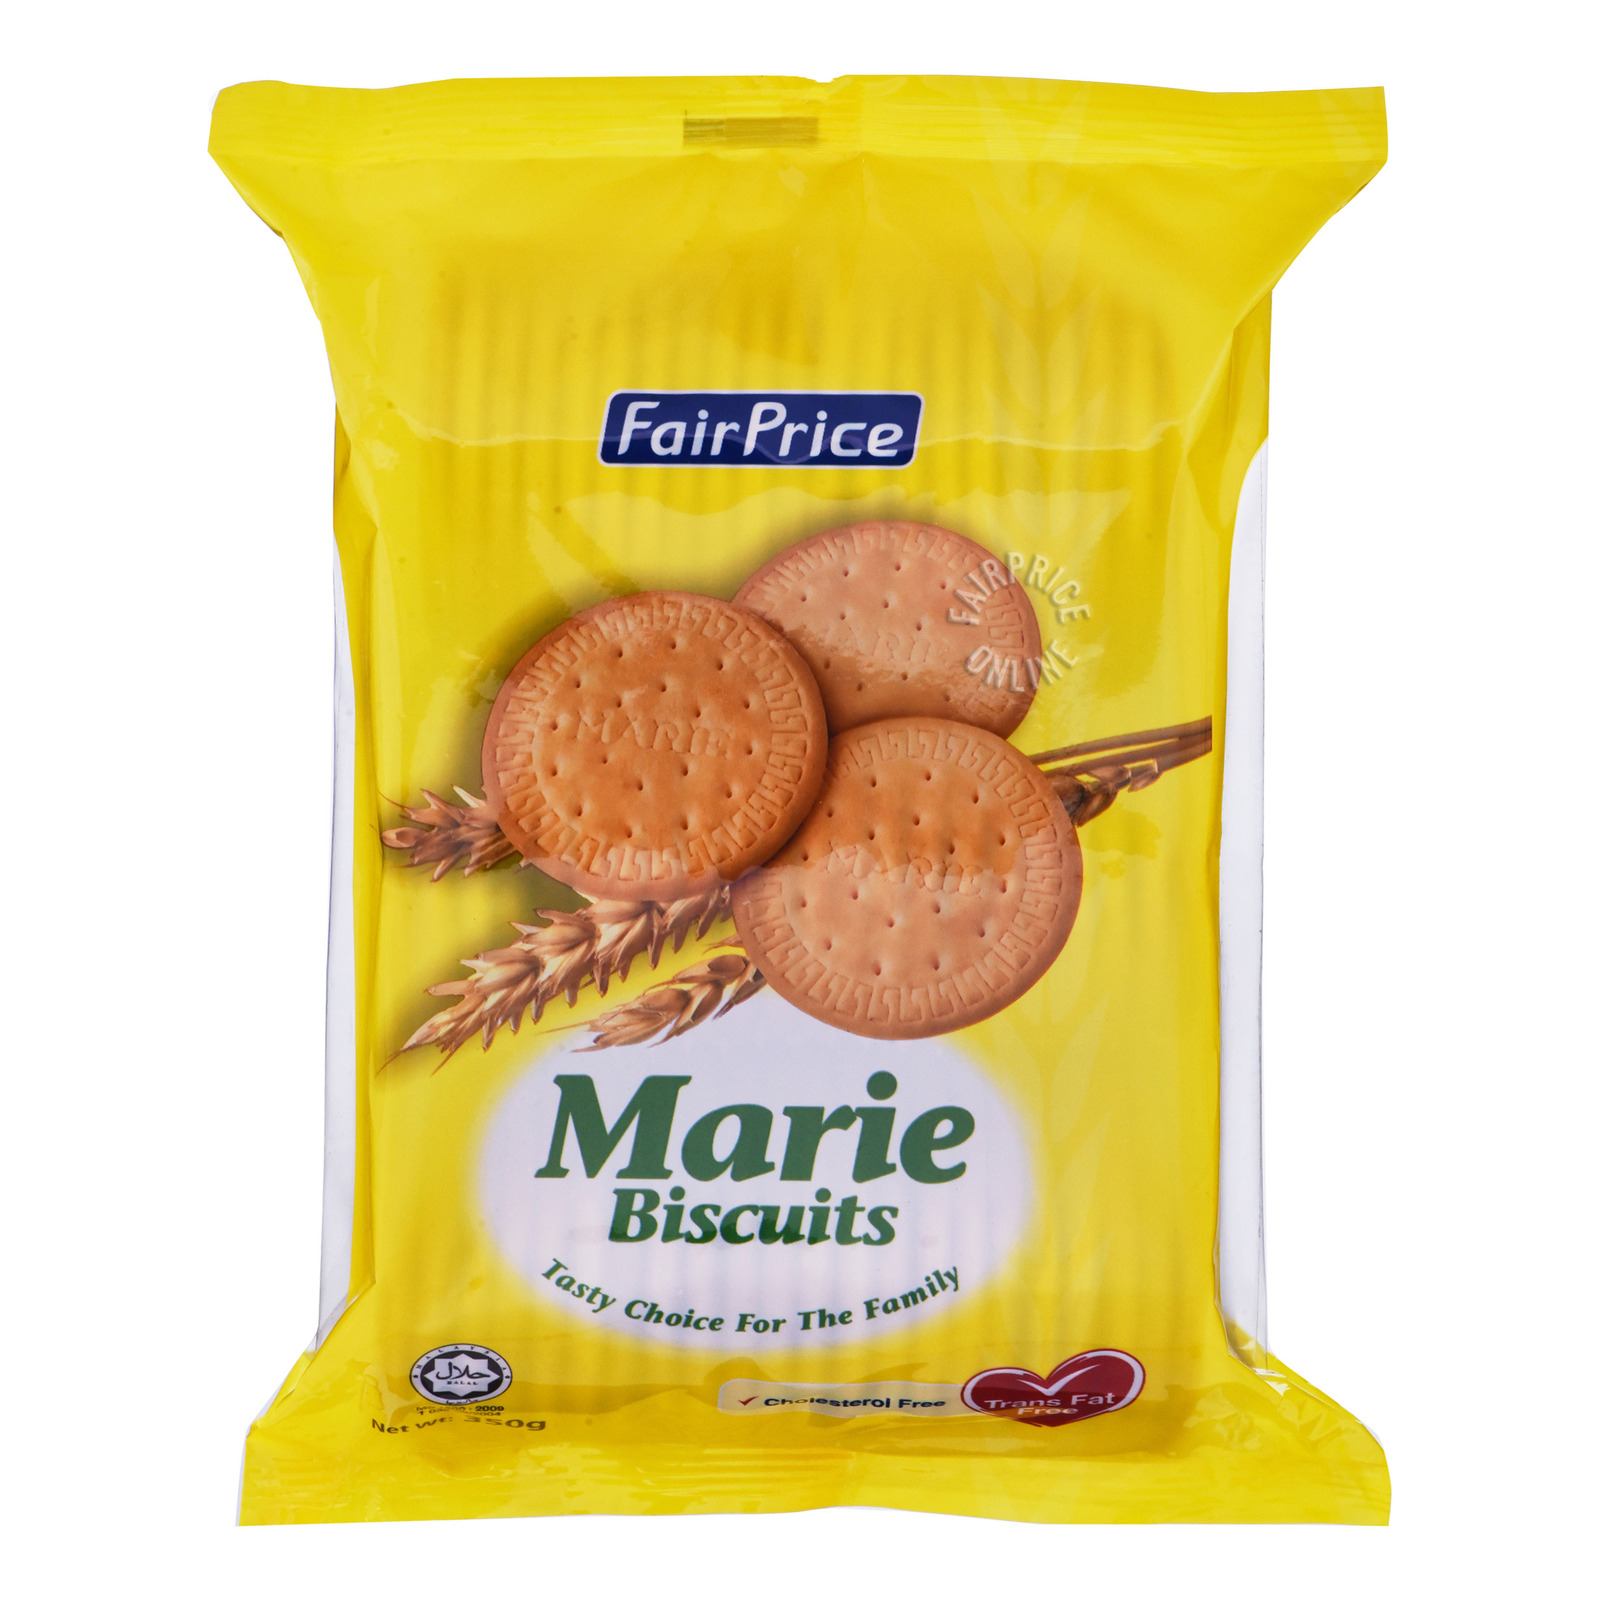 FairPrice Marie Biscuits - Original